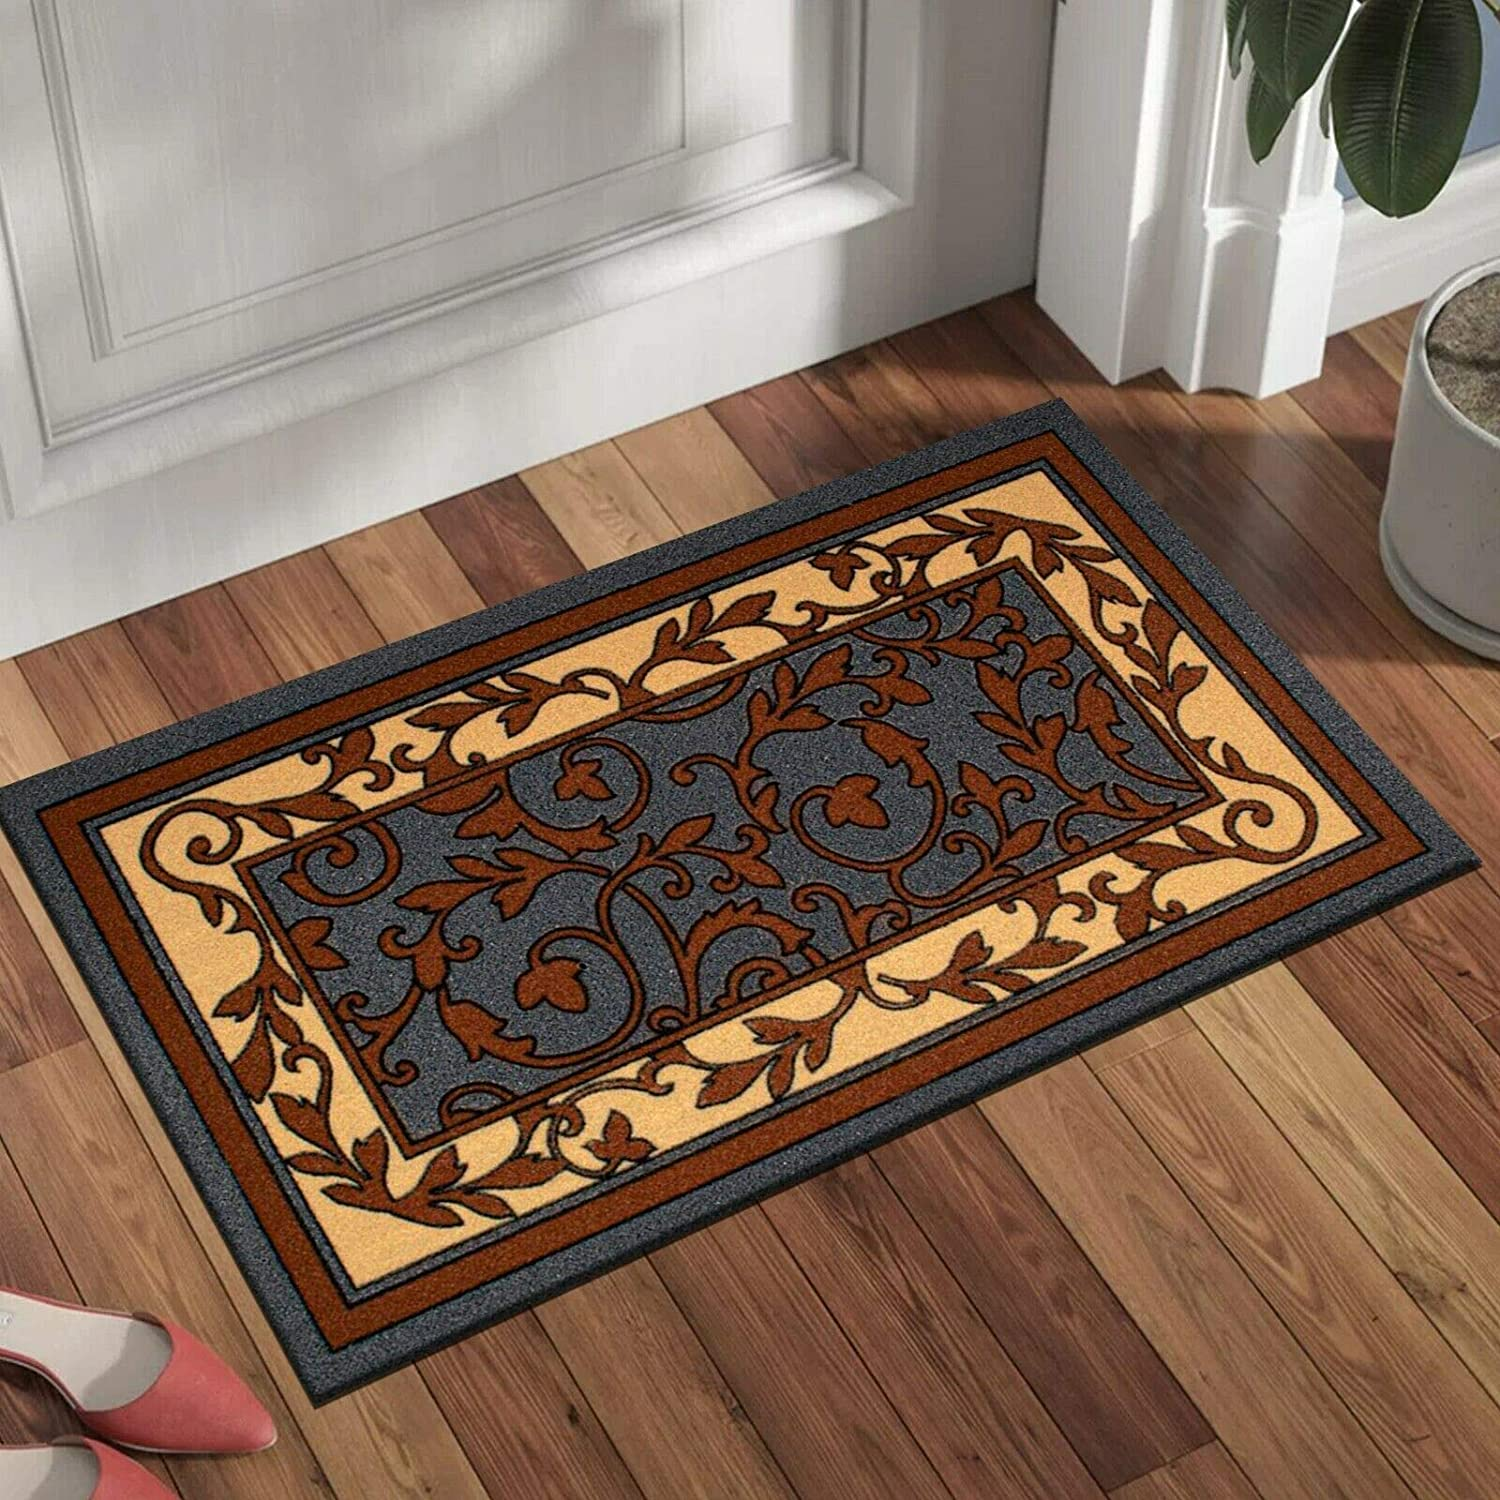 B B Entrance Doormat Super Absorbent Anti Mite Indoor Outdoor Front Back Door Mats 40 X 70 Cm Brown Leaf Kitchen Hall Entry Door Mat Amazon Co Uk Kitchen Home